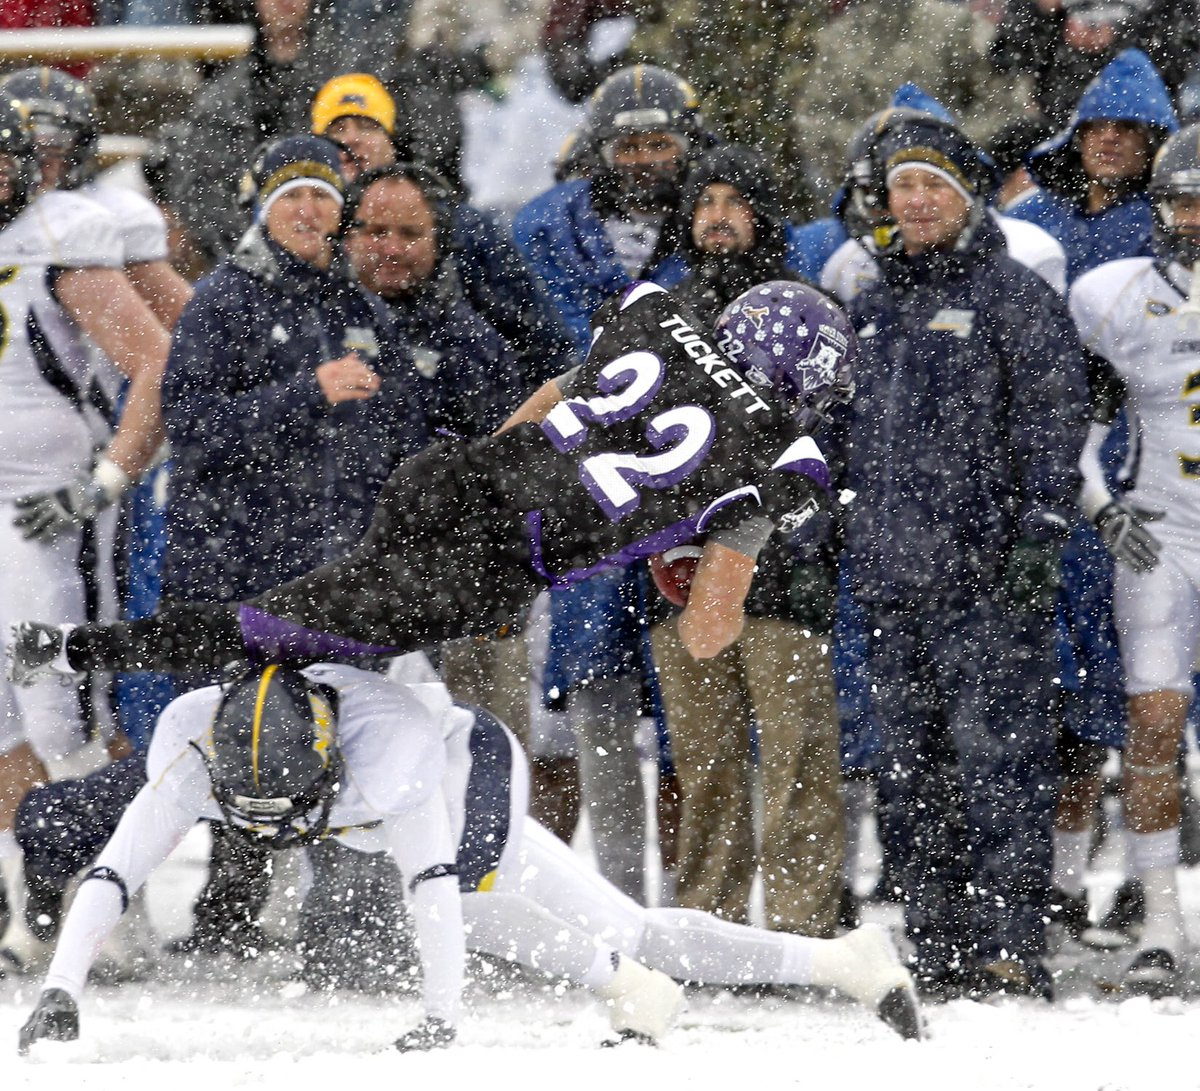 Weber State Football On Twitter Onthisday In Wildcat History Nov 12 2011 Weber State Beat Nau 34 31 In A Snowy Game At Stewart Stadium Behind 254 Yards And 3 Td S